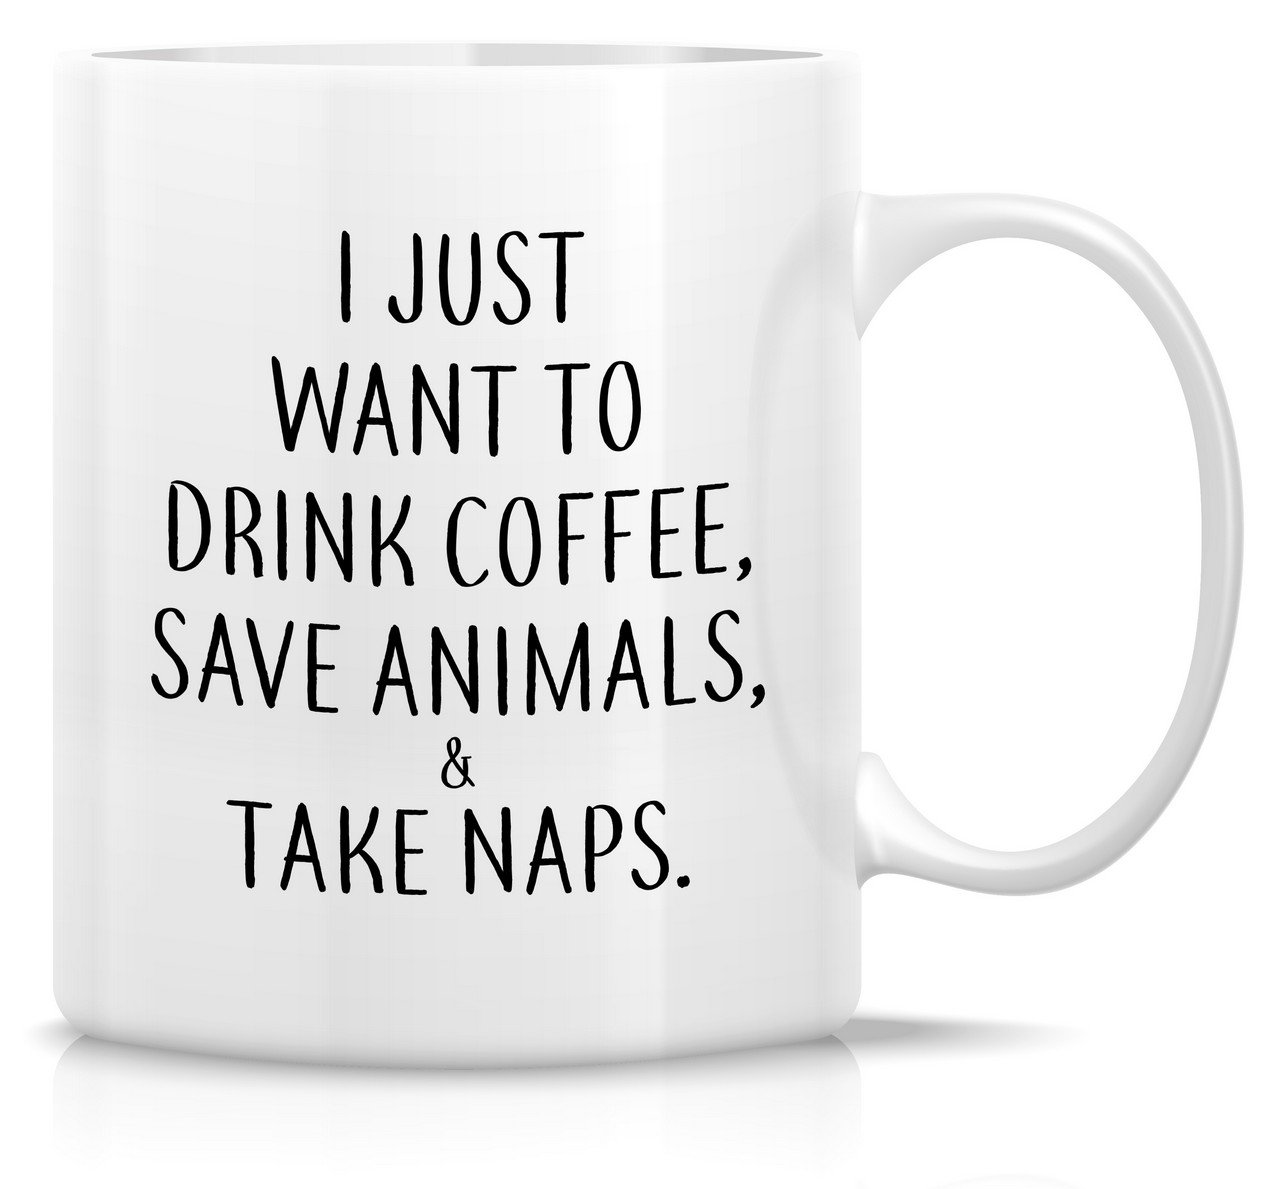 Retreez Funny Mug - Just Want to Drink Coffee, Save Animals & Take Naps 11 Oz Ceramic Coffee Mugs - Funny, Sarcasm, Sarcastic, Inspirational birthday gifts for friends, coworkers, siblings, dad, mom by Retreez